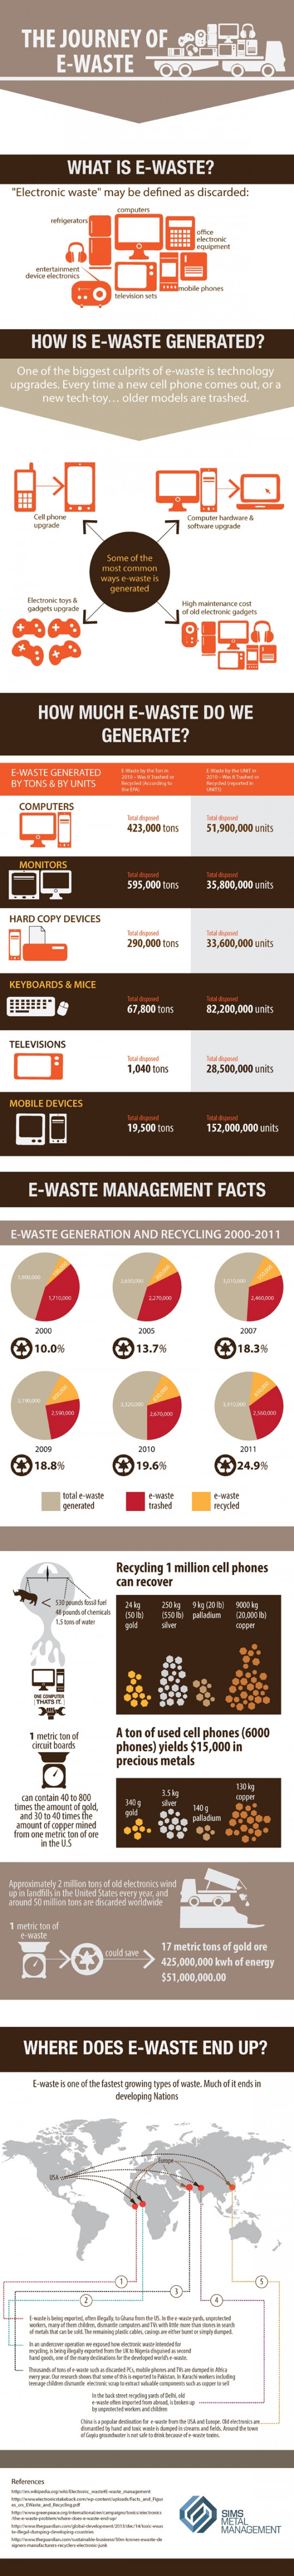 The Journey of E-Waste